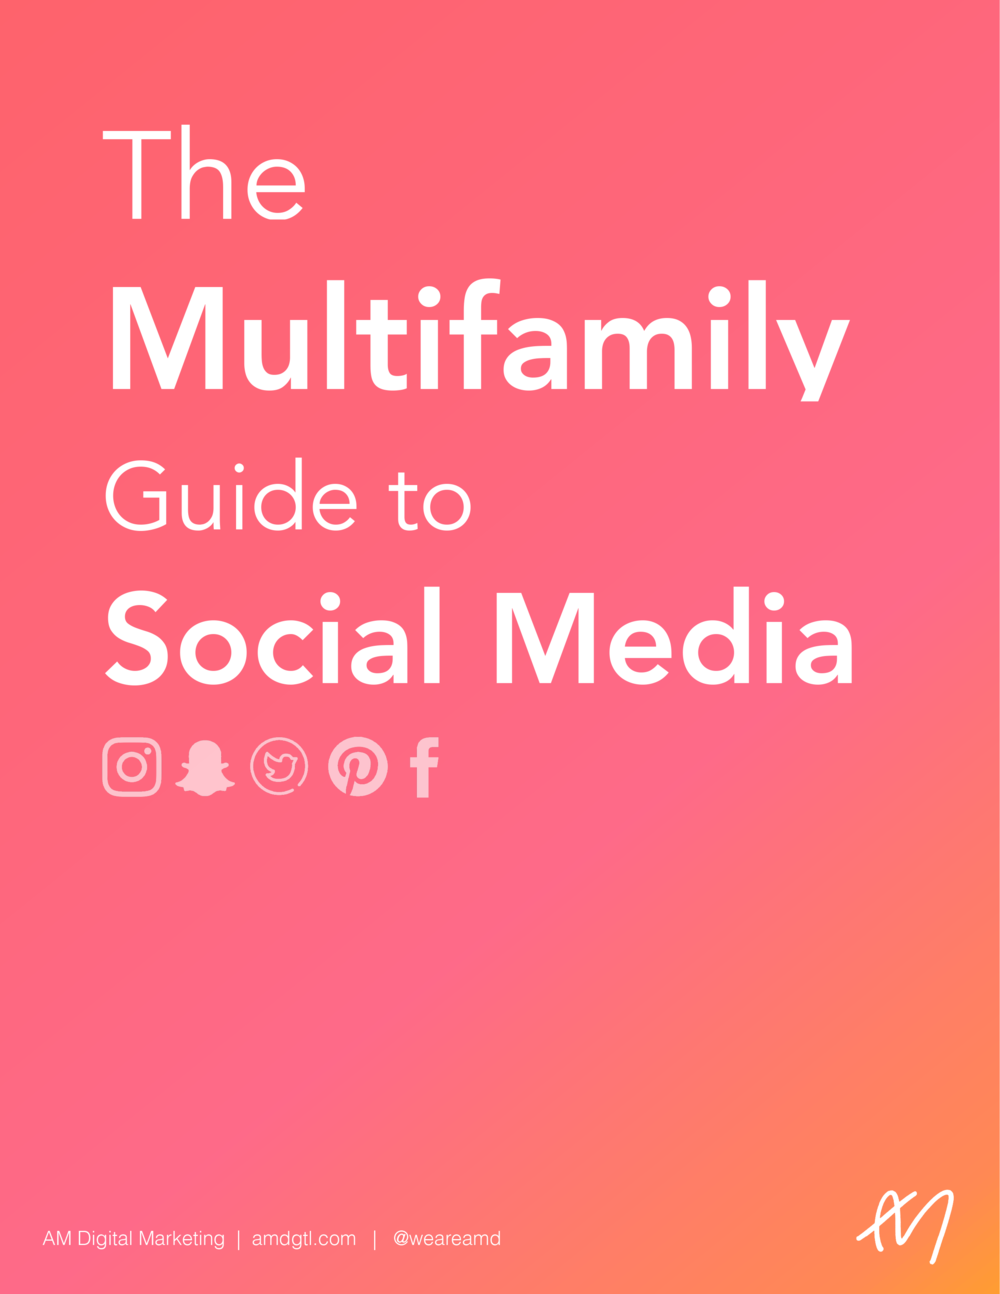 The Multifamily Guide to Social Media [GUIDE]